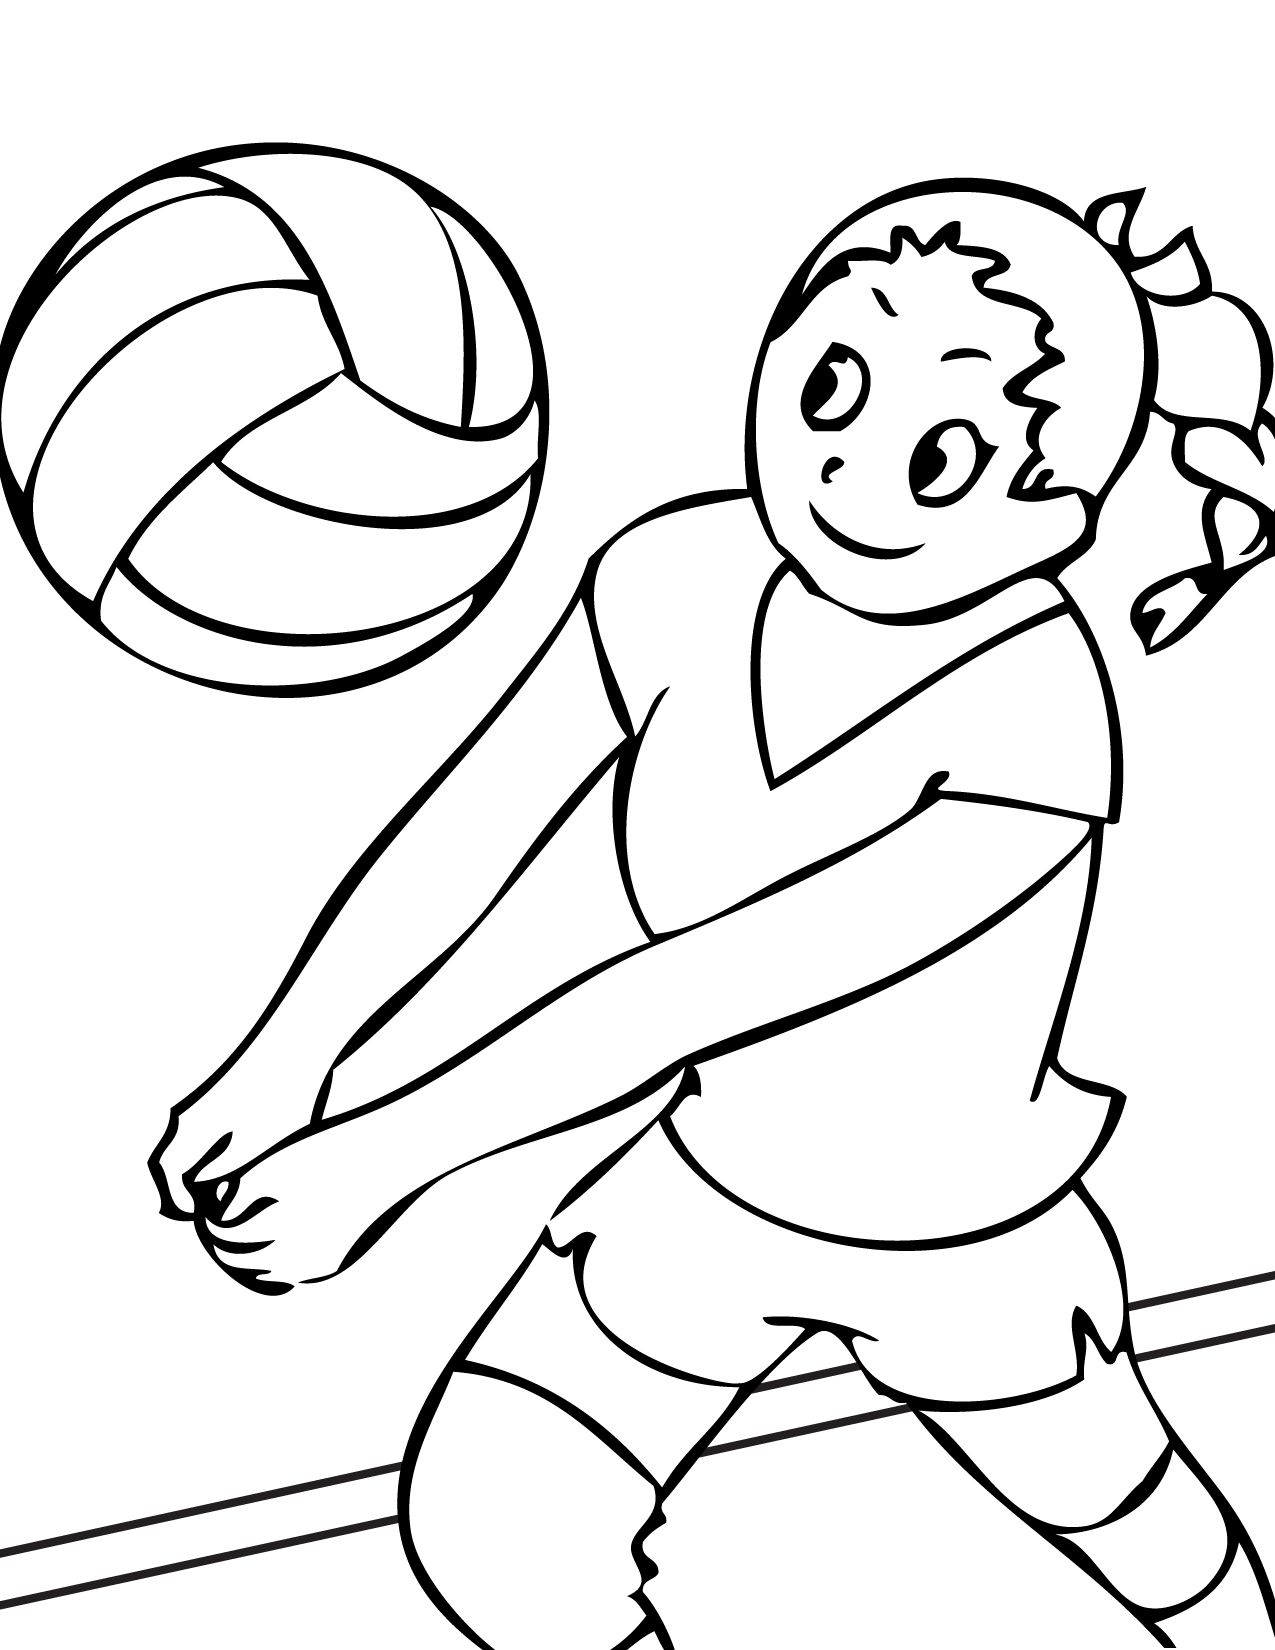 Coloring Pages For Kids Sports Kidsfreecoloring.Net | Free Download ...